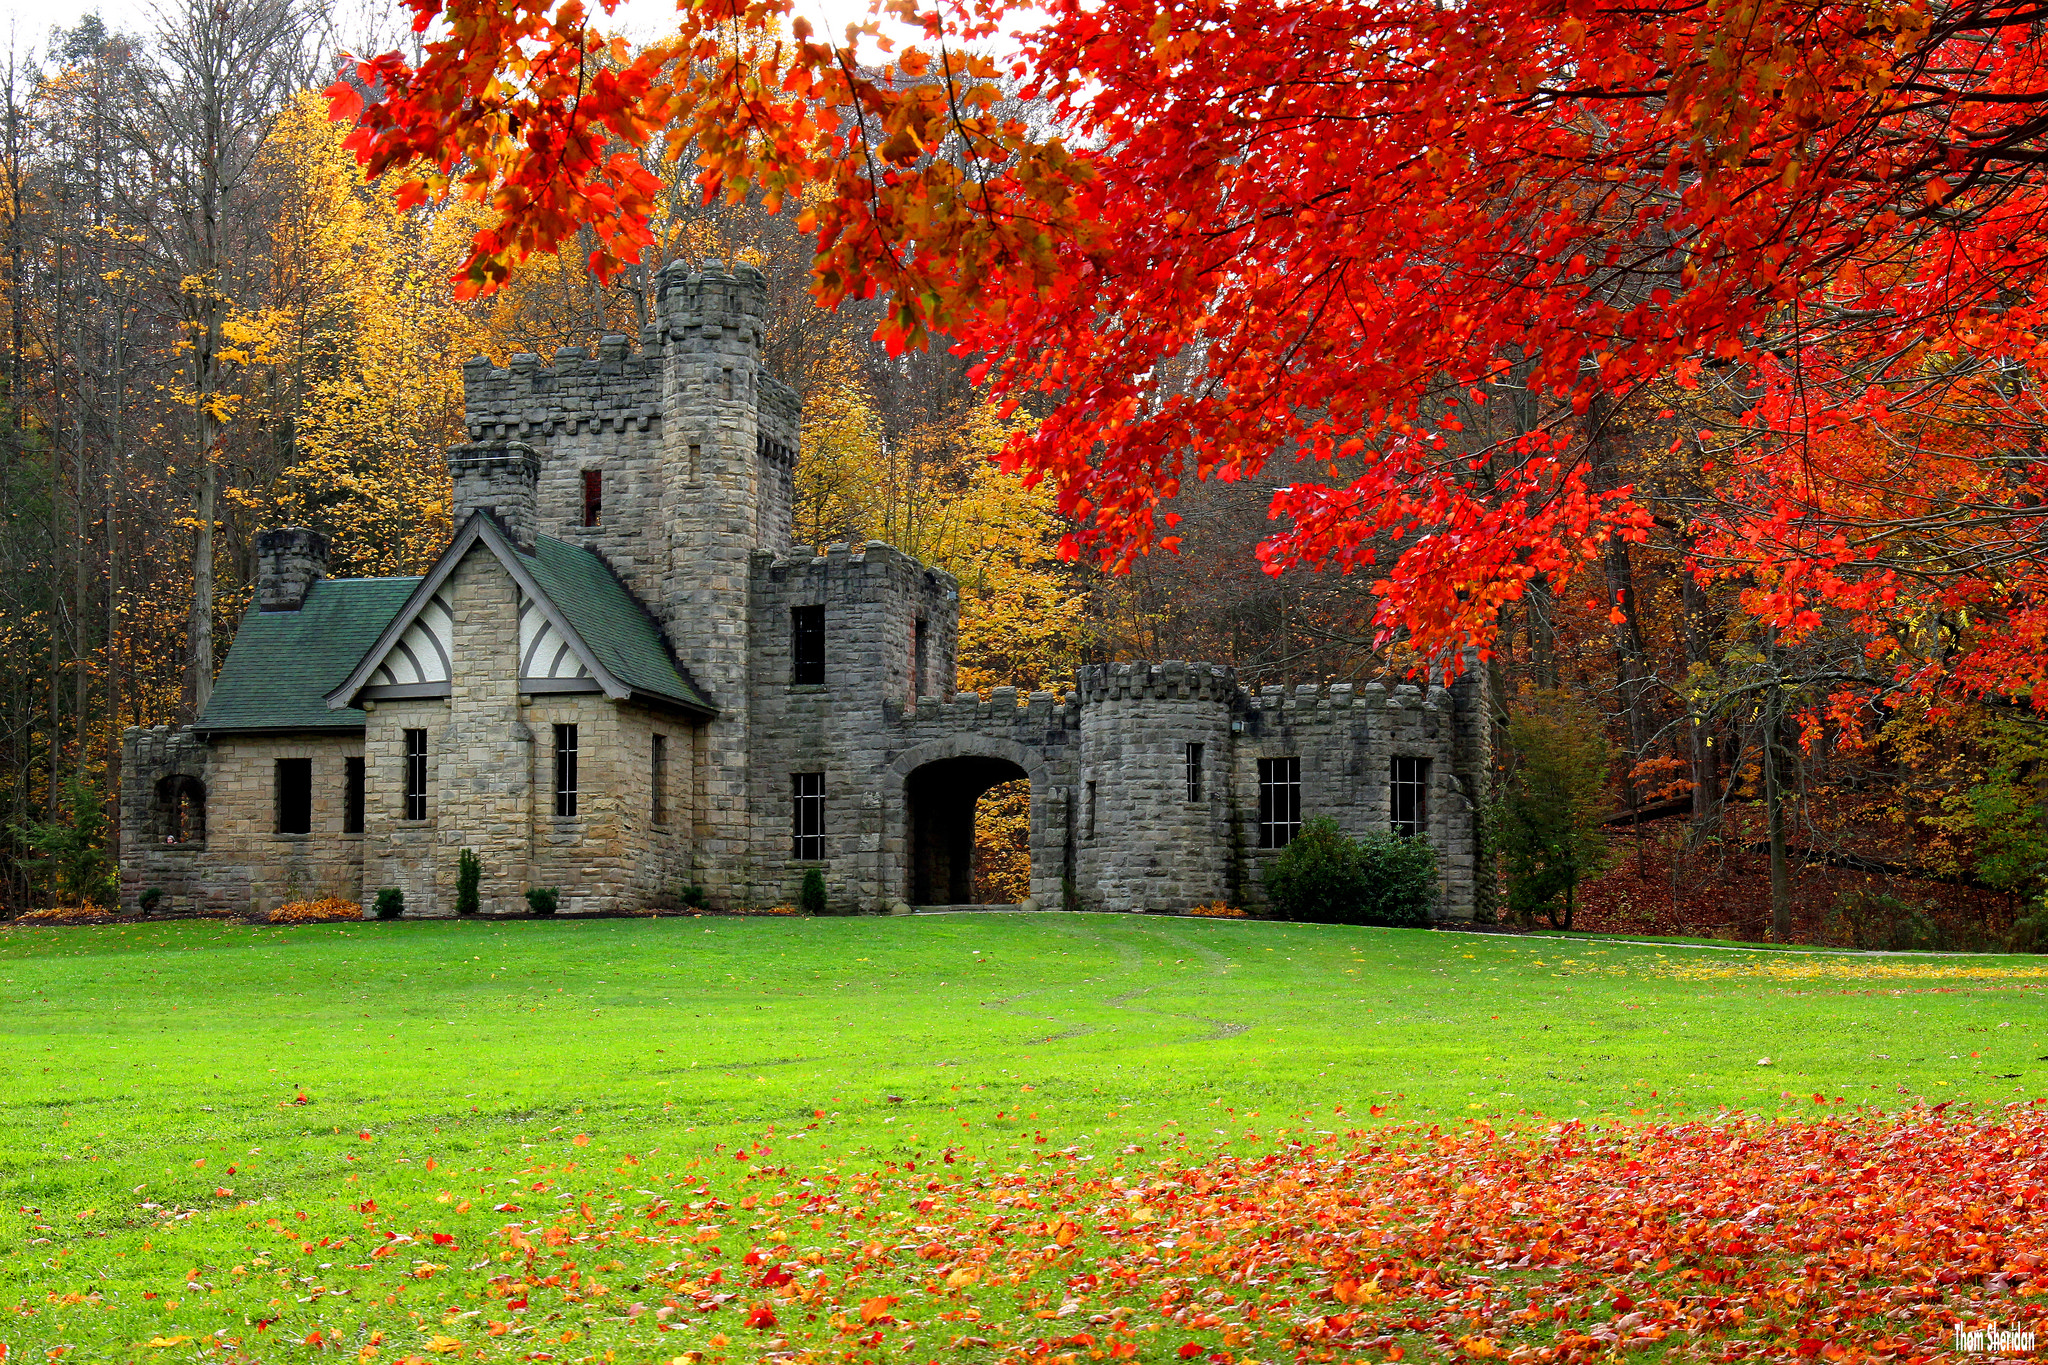 Fall Foliage Wallpaper For Iphone Castle In Autumn Full Hd Wallpaper And Background Image